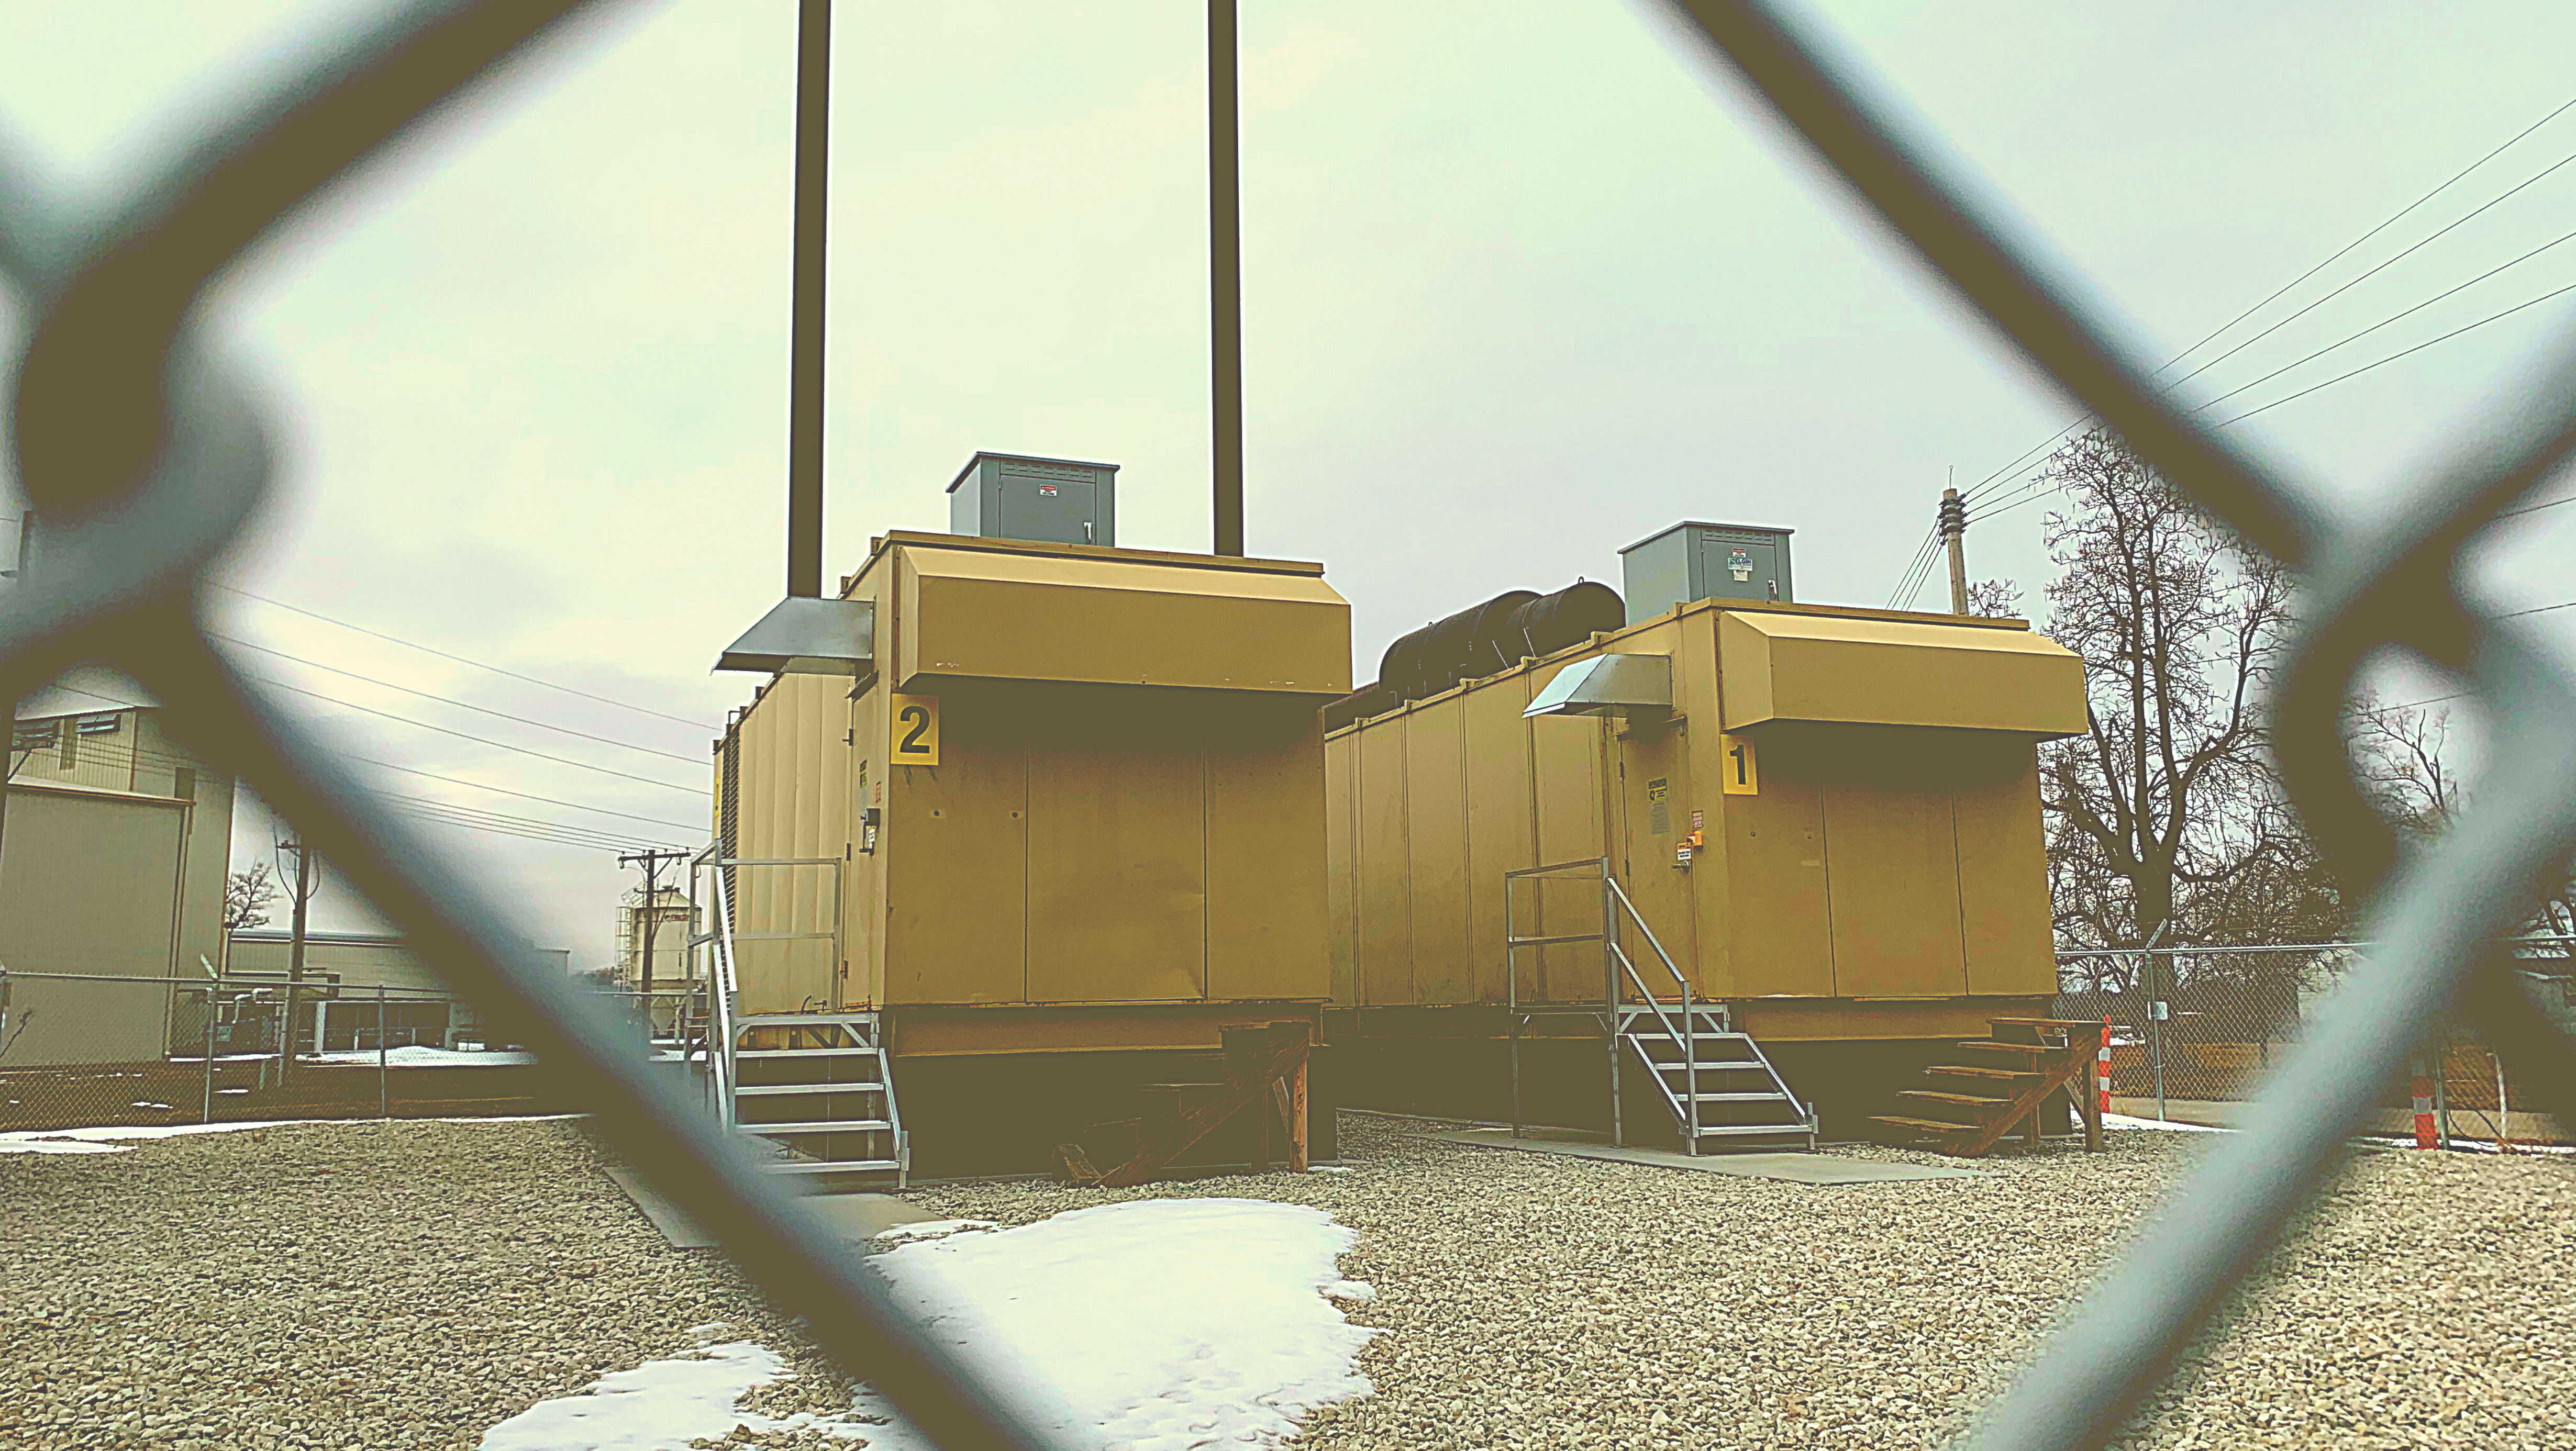 Photo of two electrical generators behind a fence